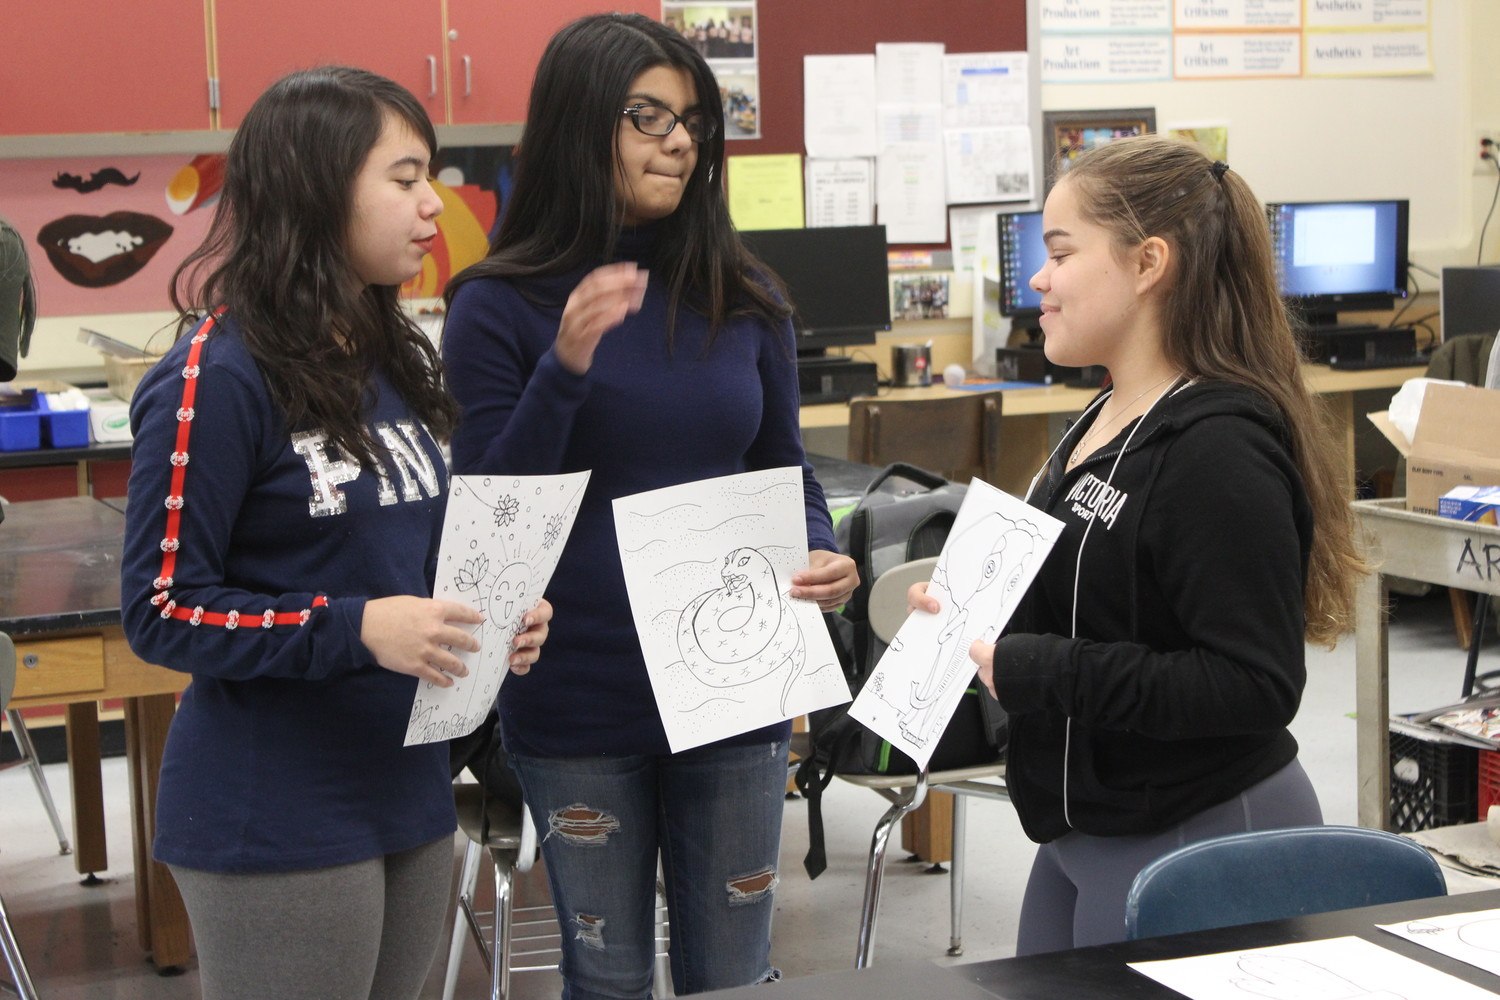 Sophomore Samantha Jaeckel, senior Sumaiya Ahmed, and junior Vanesa Soto shared with each other the illustrations they created.